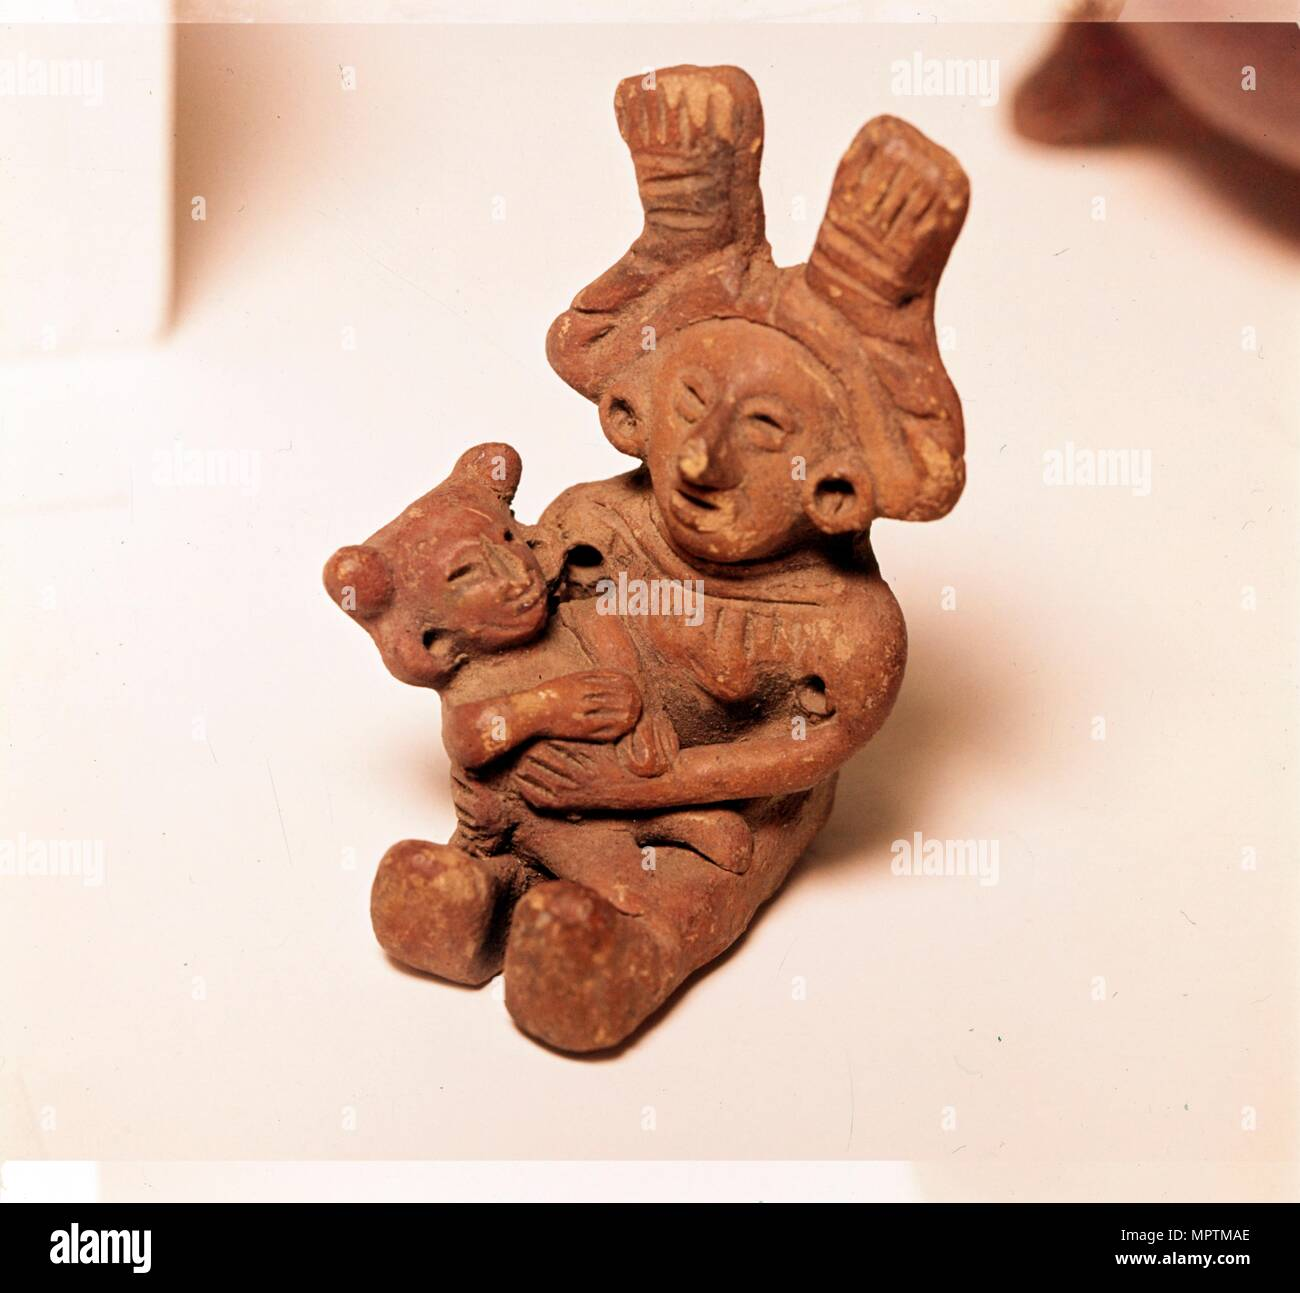 Pottery Rattle of woman holding child, Mexico. Axtec, late Post-Classic Period, 1300-1520. Artist: Unknown. - Stock Image